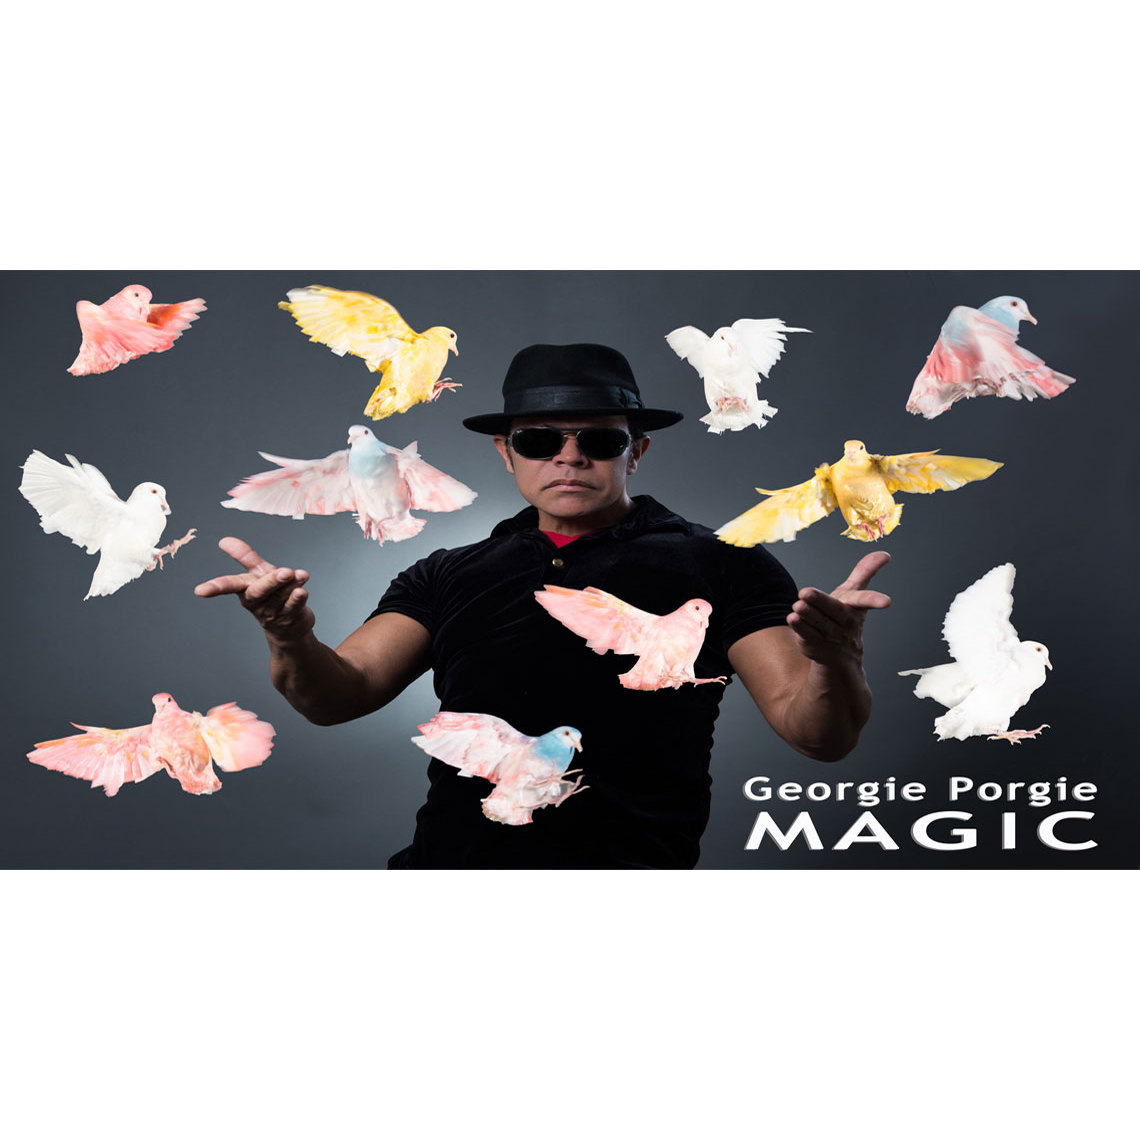 Georgie Porgie Magic - The Real Georgie Porgie